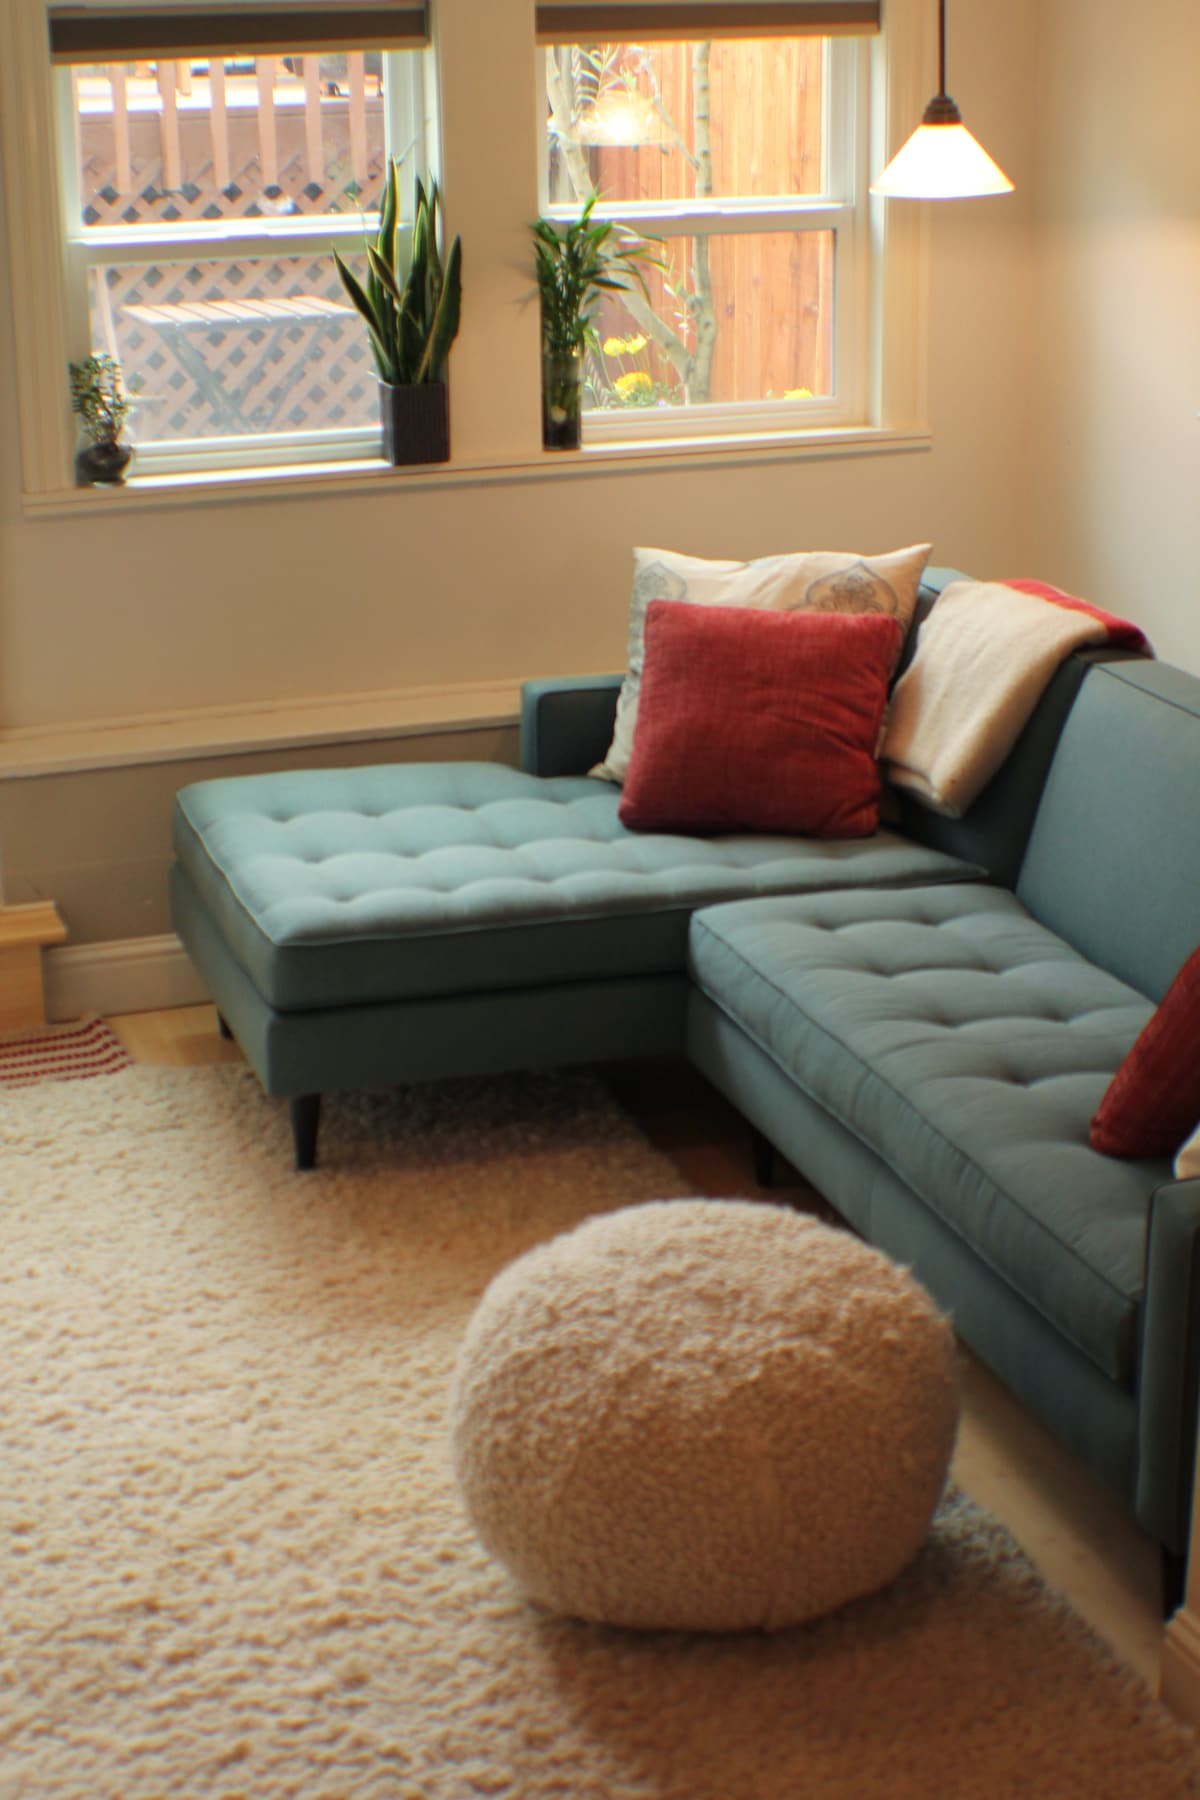 The sectional couch: room for two.